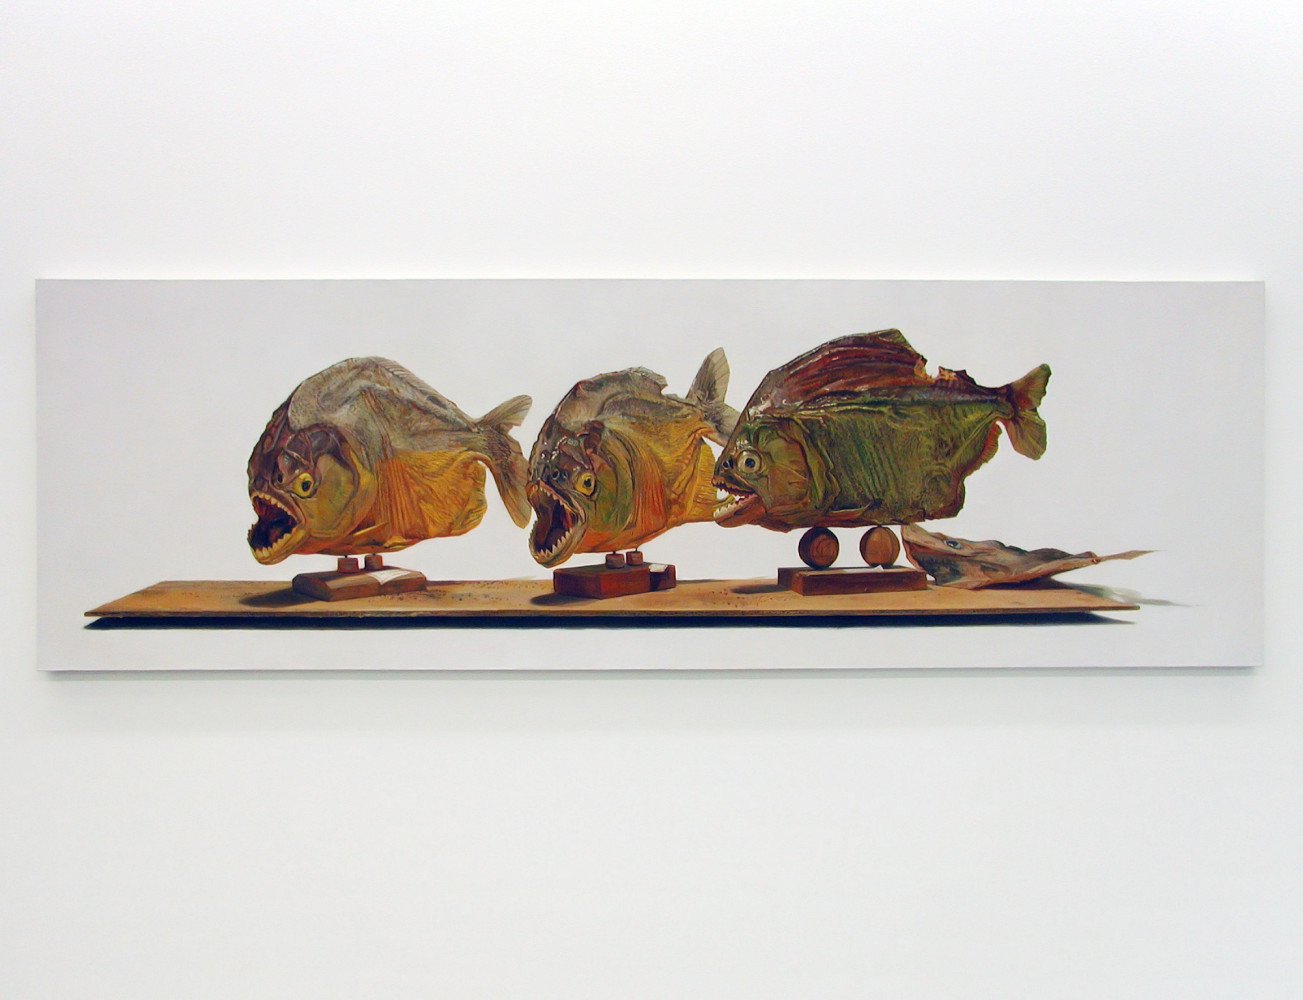 'Jim Butler, Bad Fish', 2001